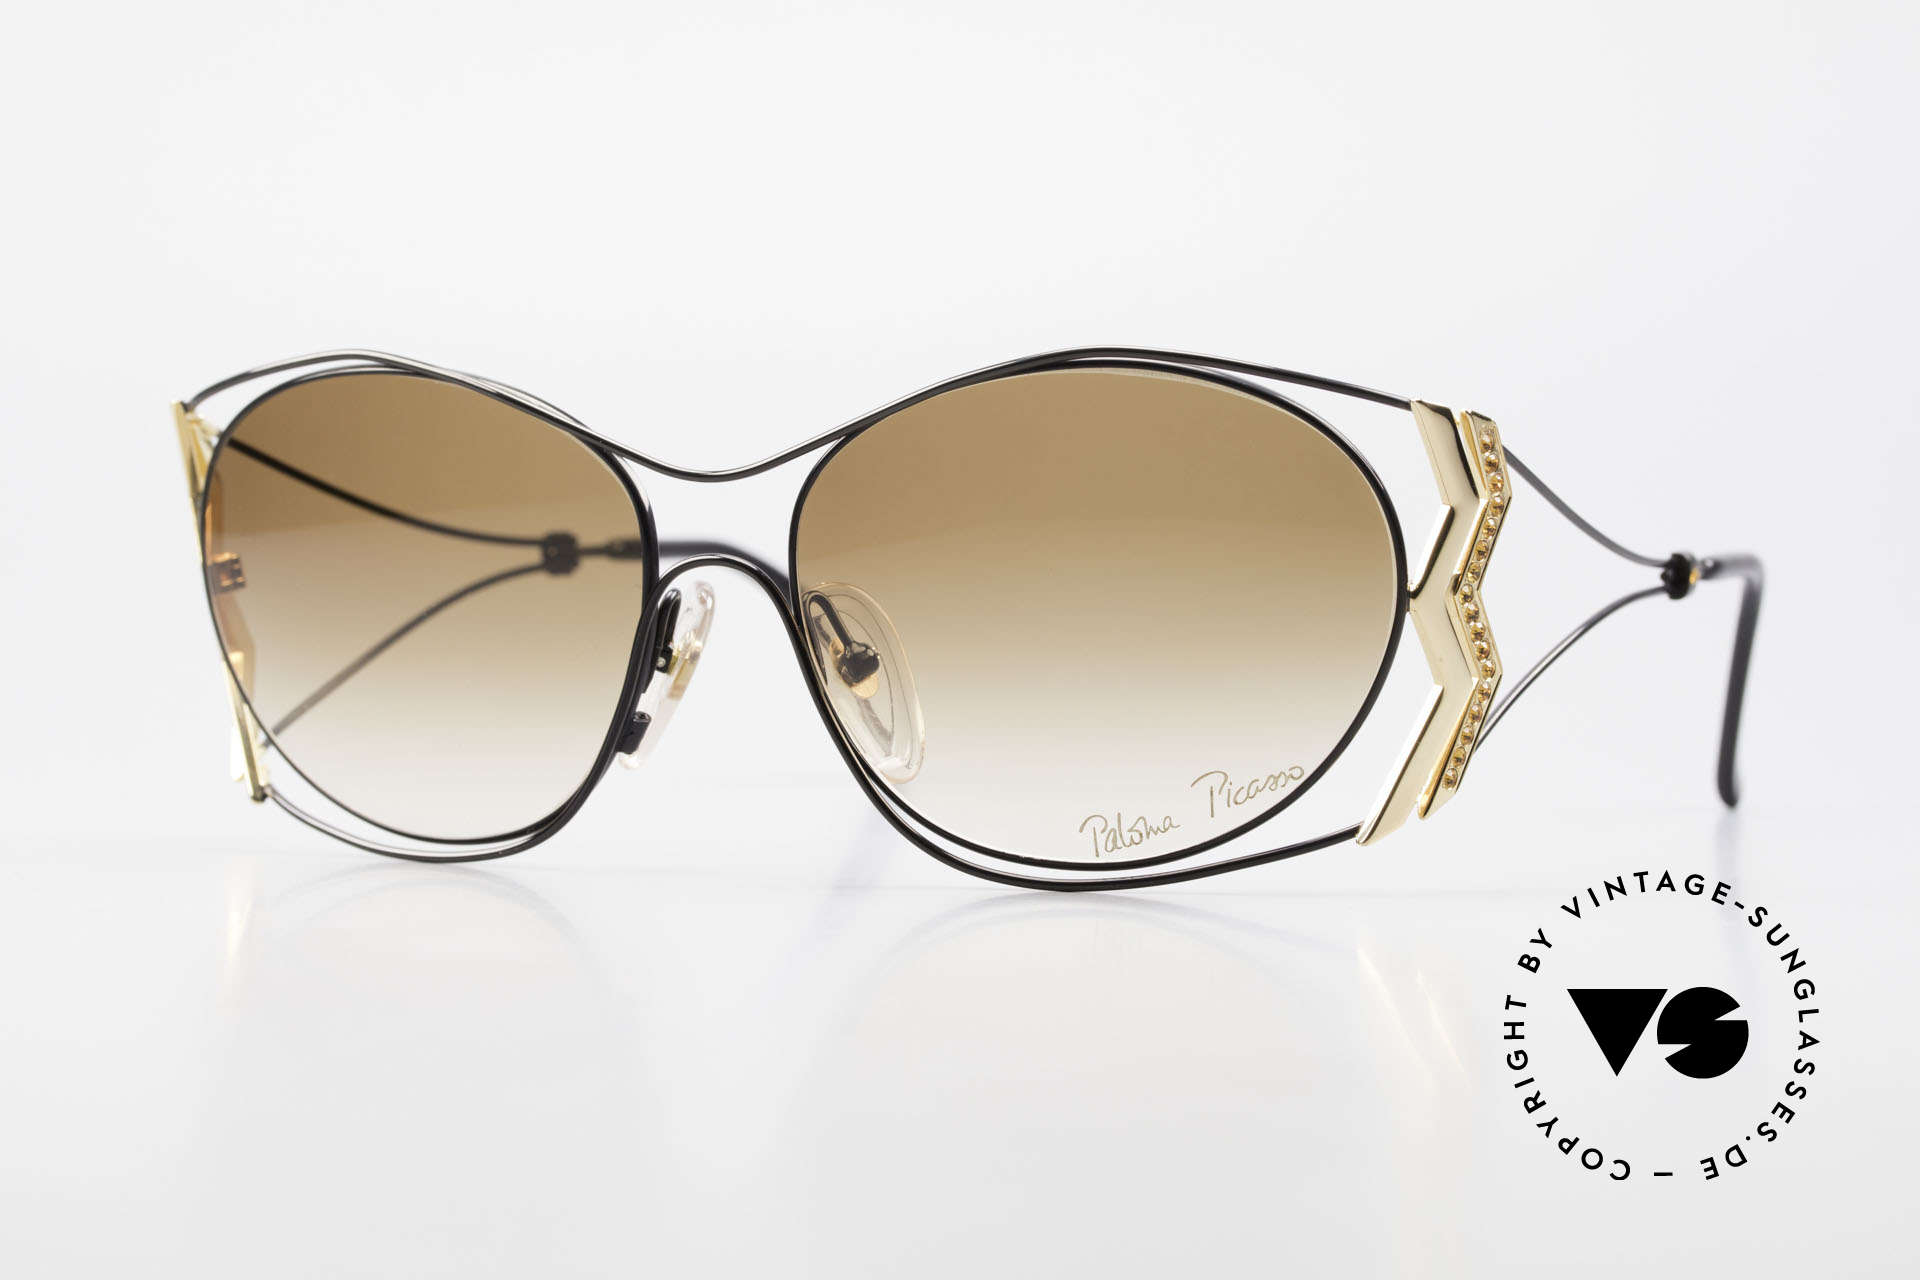 Paloma Picasso 3707 90s Ladies Shades Rhinestones, Picasso vintage sunglasses with TOPAZ rhinestones, Made for Women